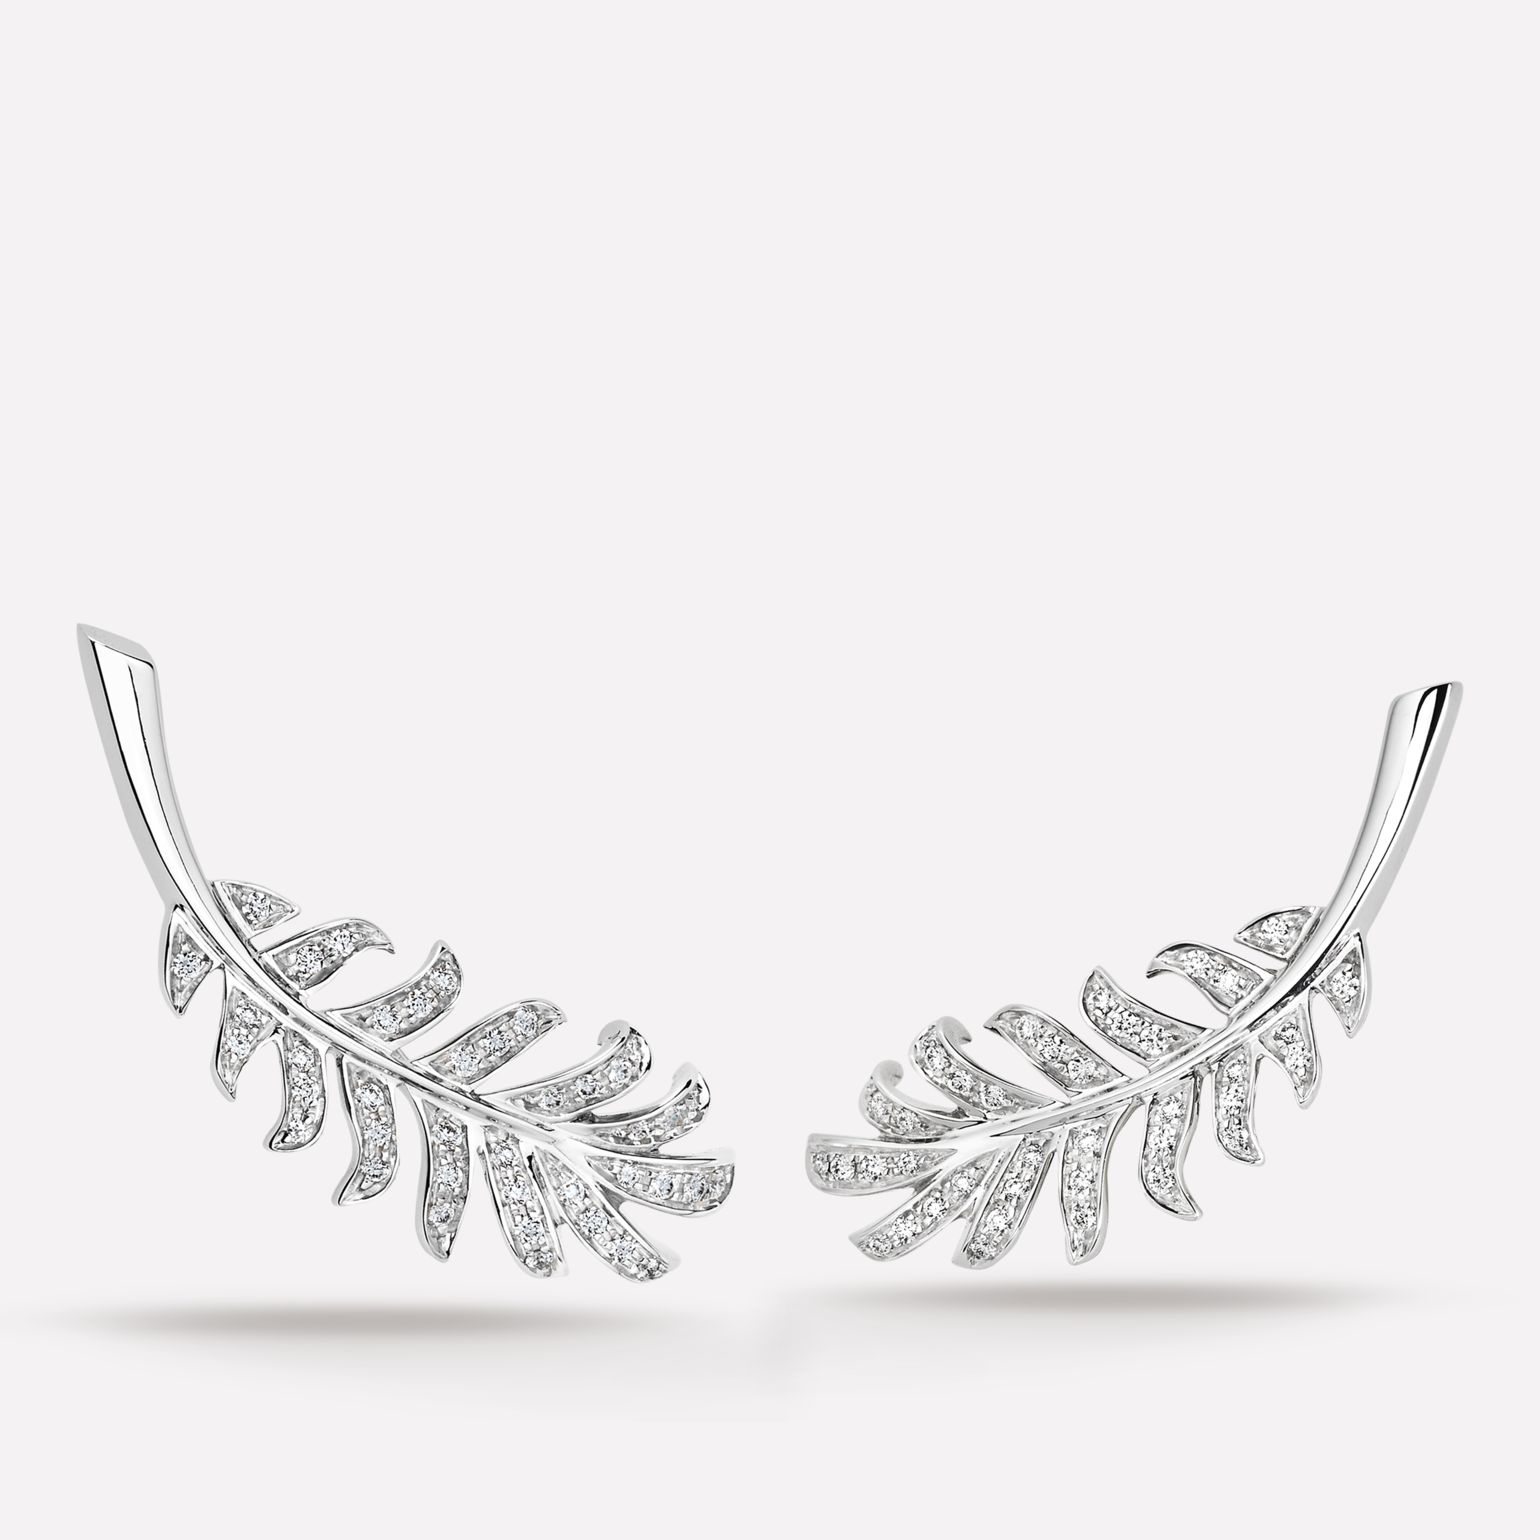 Plume de CHANEL earrings Plume earrings in 18K white gold and diamonds